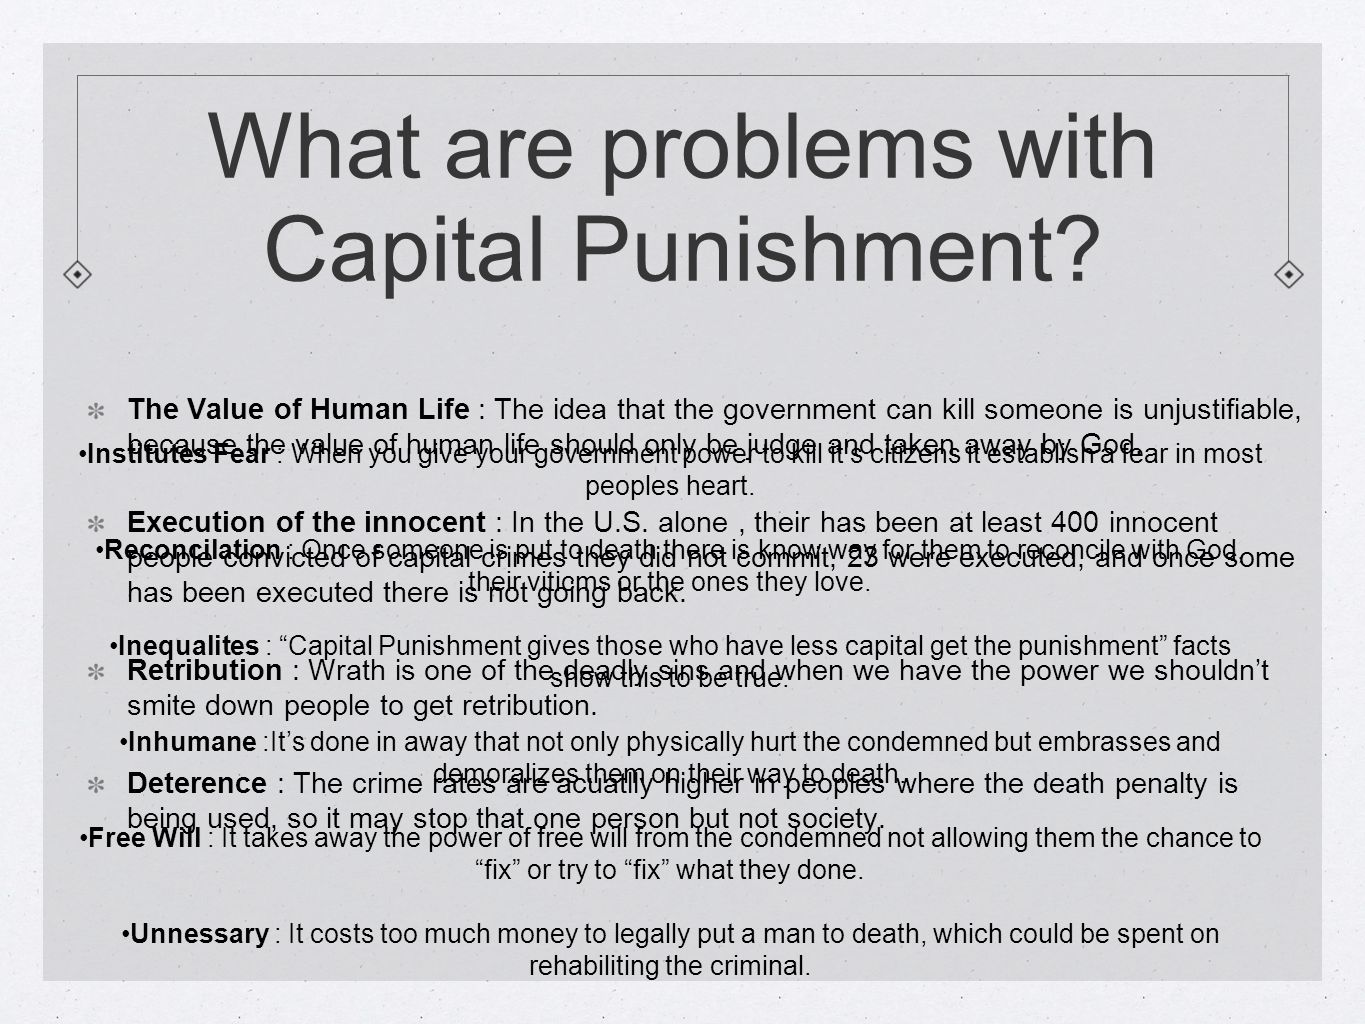 why capital punishment should be fixed The fact that capital punishment costs so much is a problem that needs to be fixed, but is irrelevant when dealing with the philosophical question of whether the death penalty should be allowed or not.